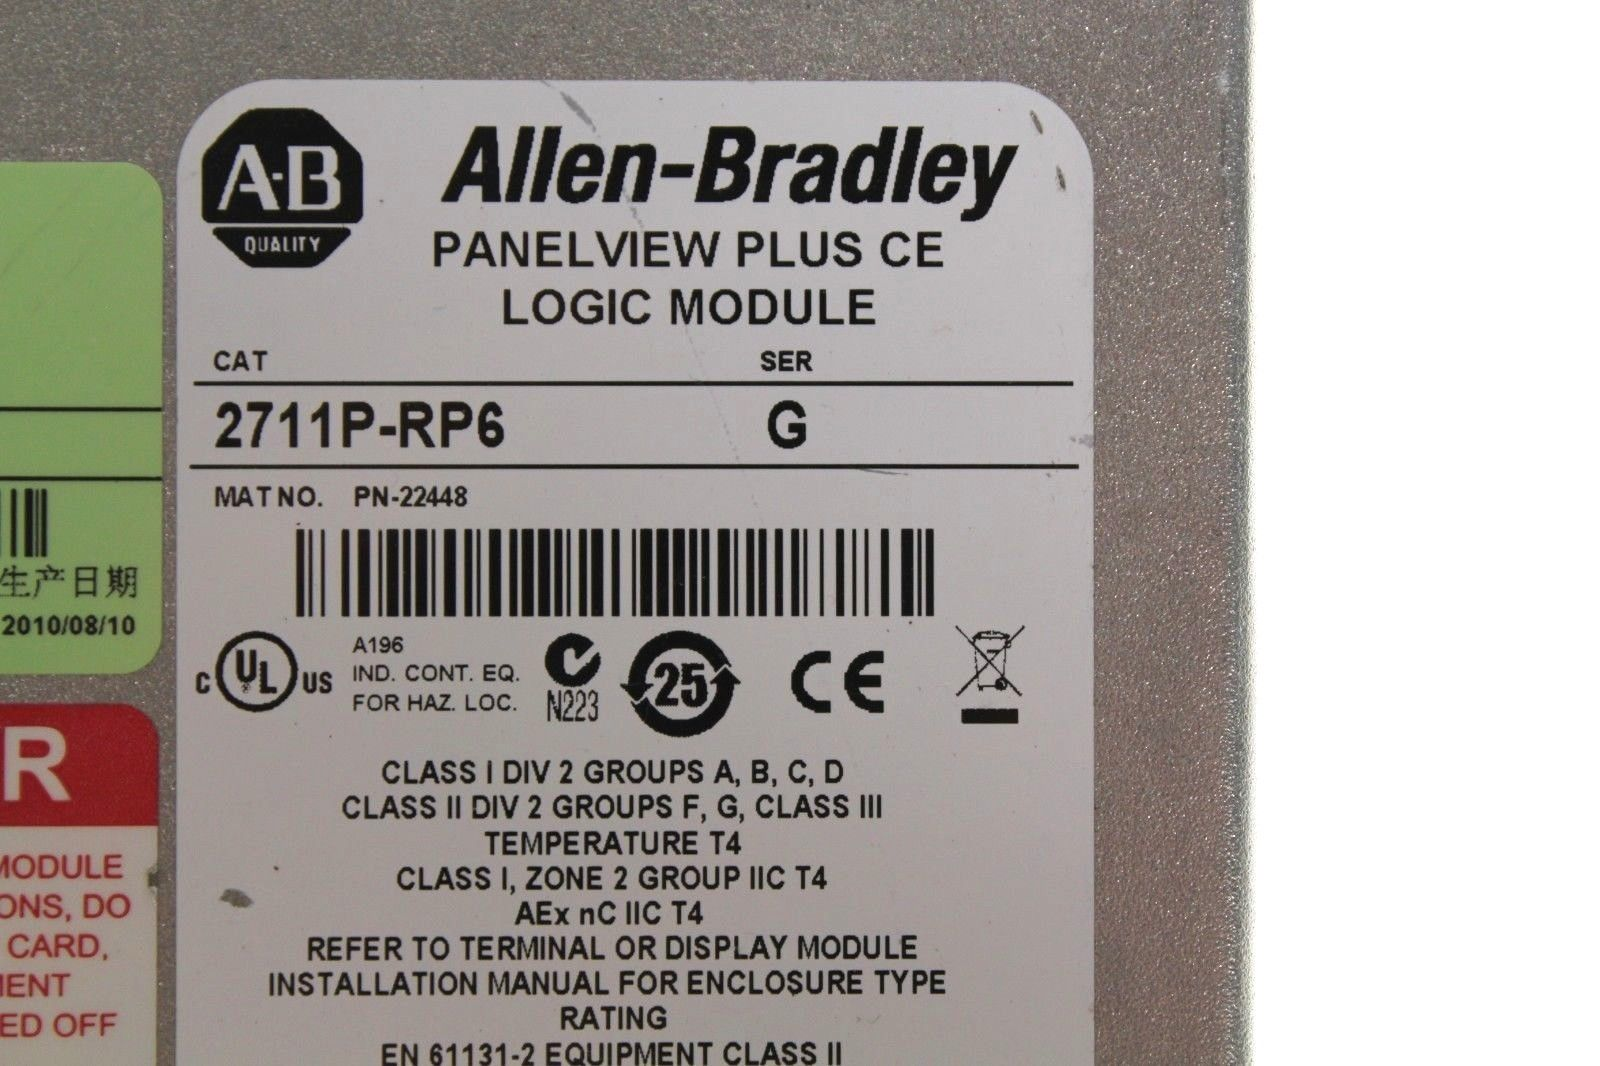 KR Automation - Buy, Sell Allen Bradley, PanelView